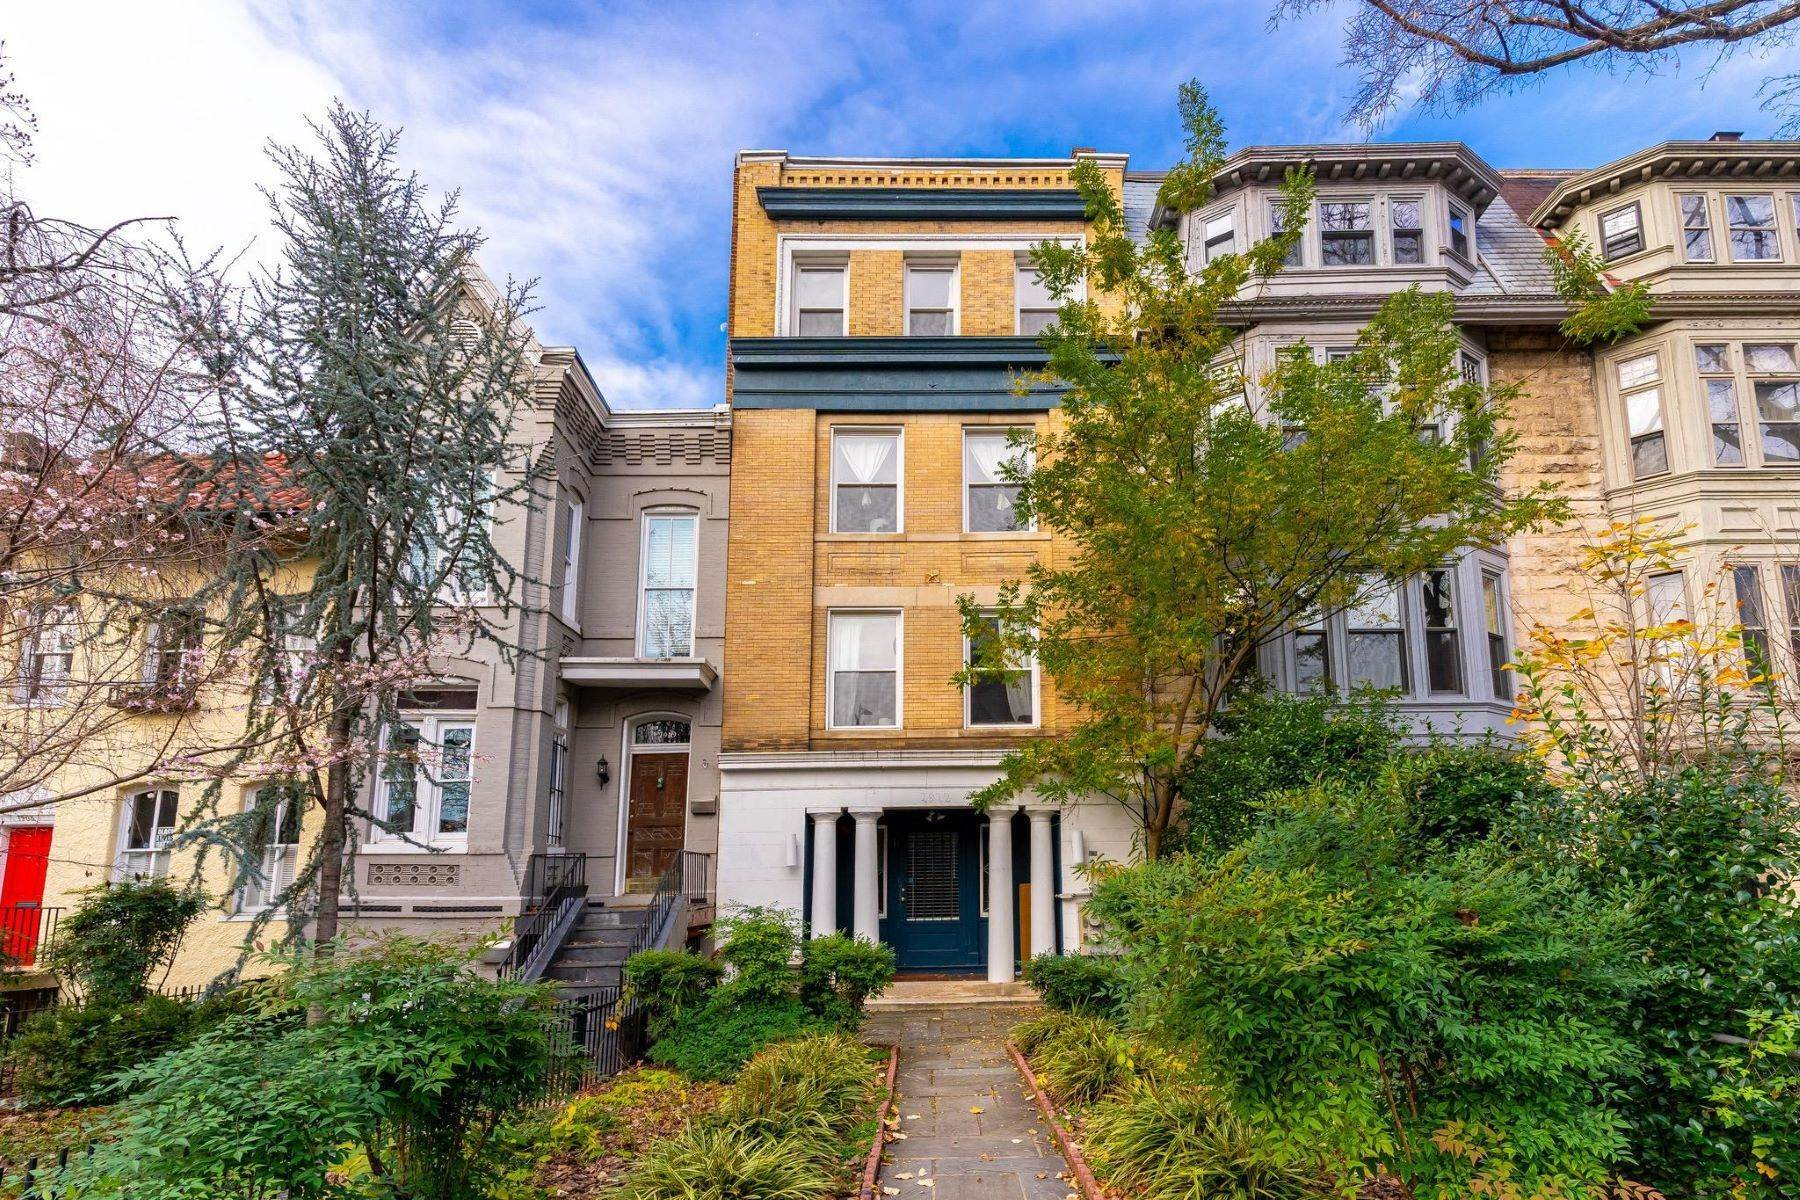 Multi-Family Homes for Sale at Washington, District Of Columbia, 20009 United States